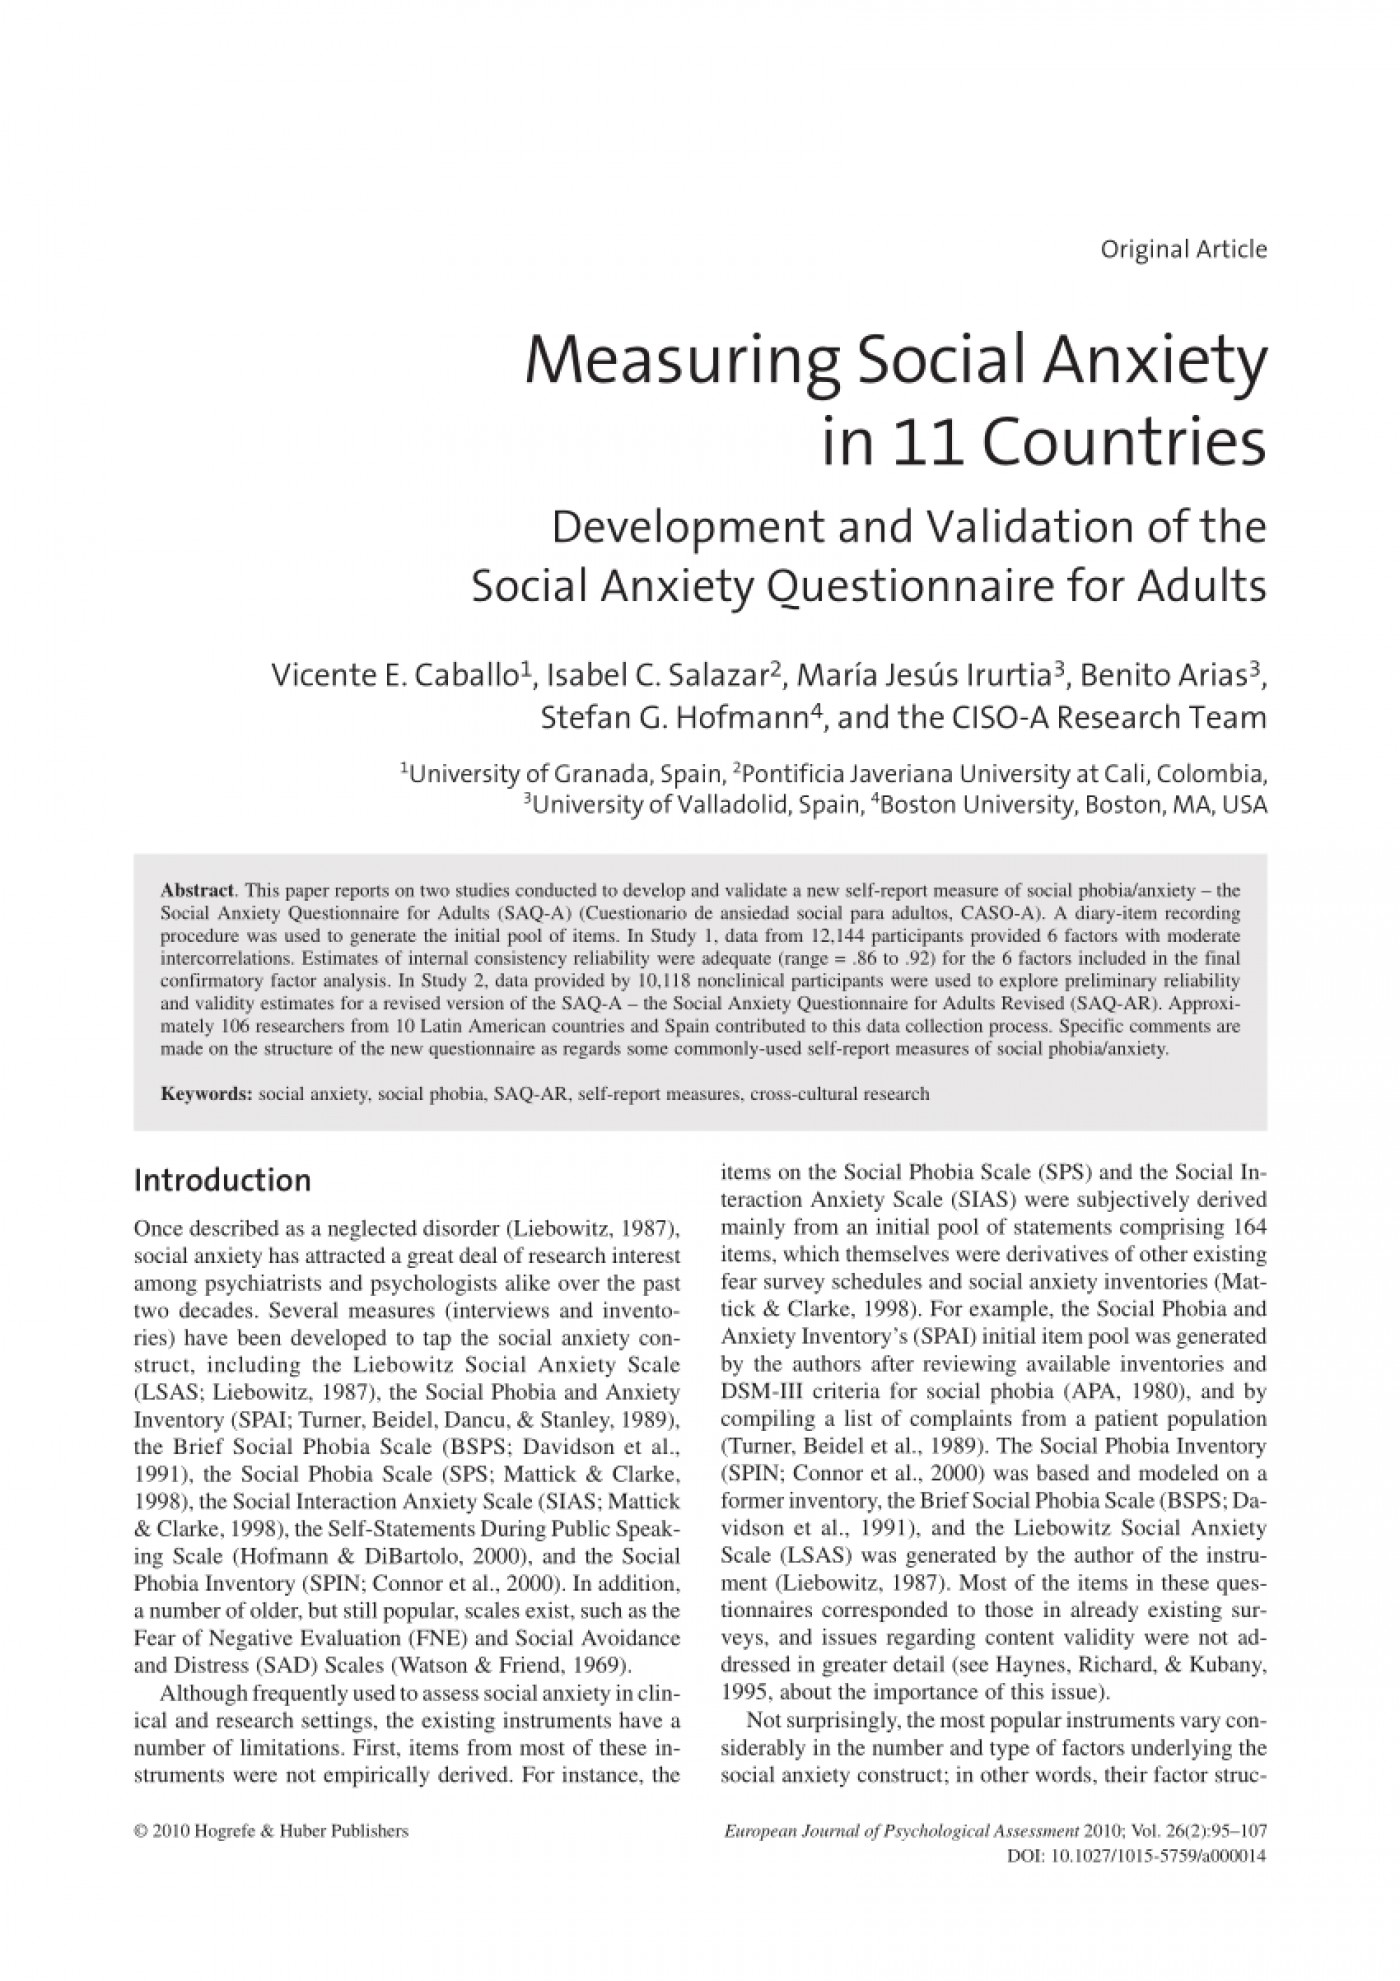 007 Psychology Research Paper On Social Anxiety Disorder Staggering 1400